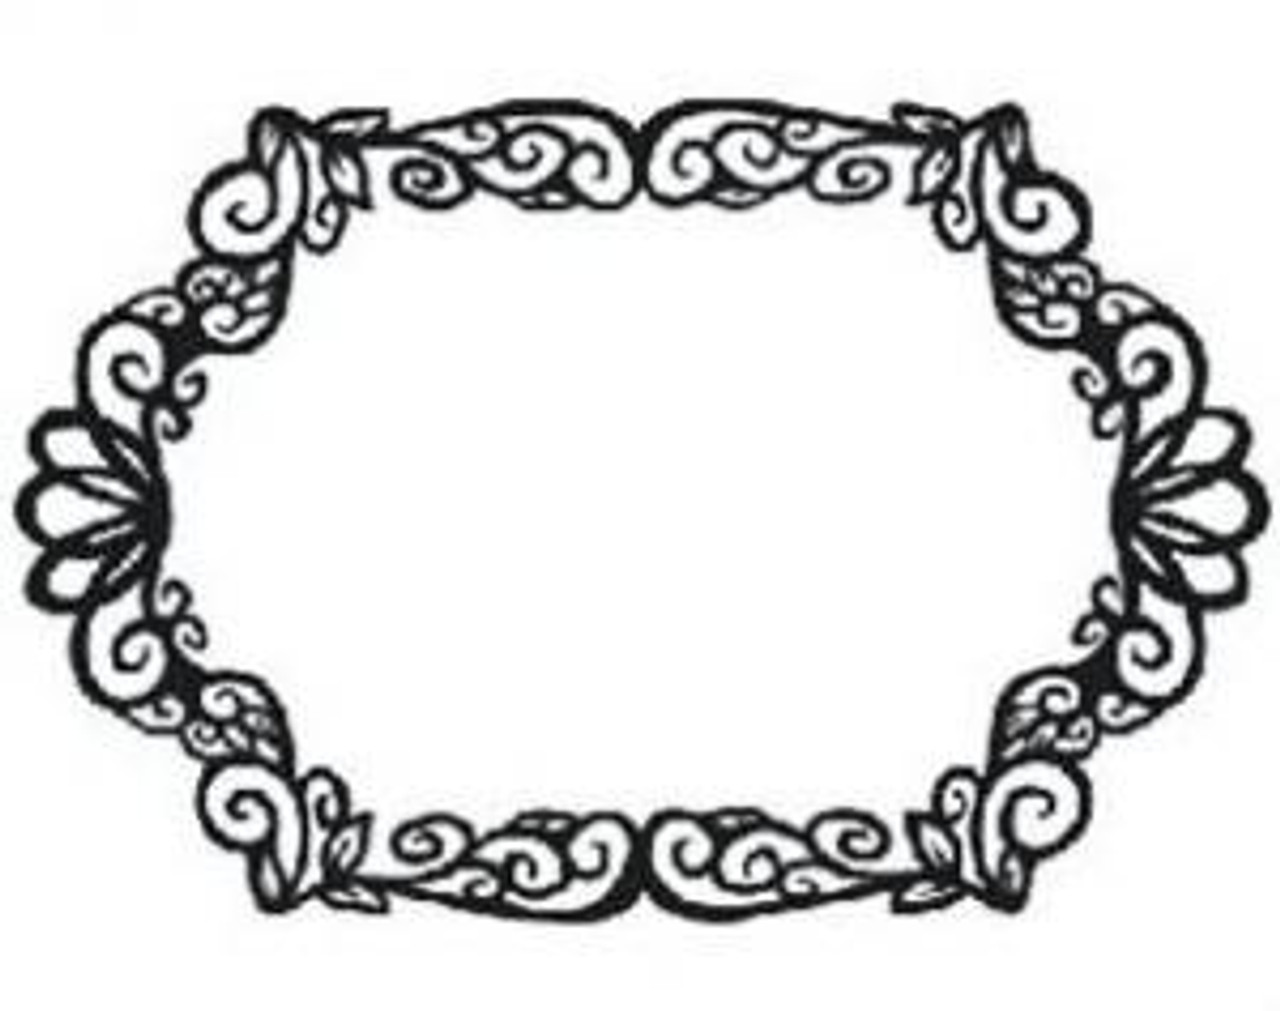 Sue Wilson Stamps To Die For - BLOSSOMING FRAME UMS517 - 10% Off FREE POSTAGE Pre-Order